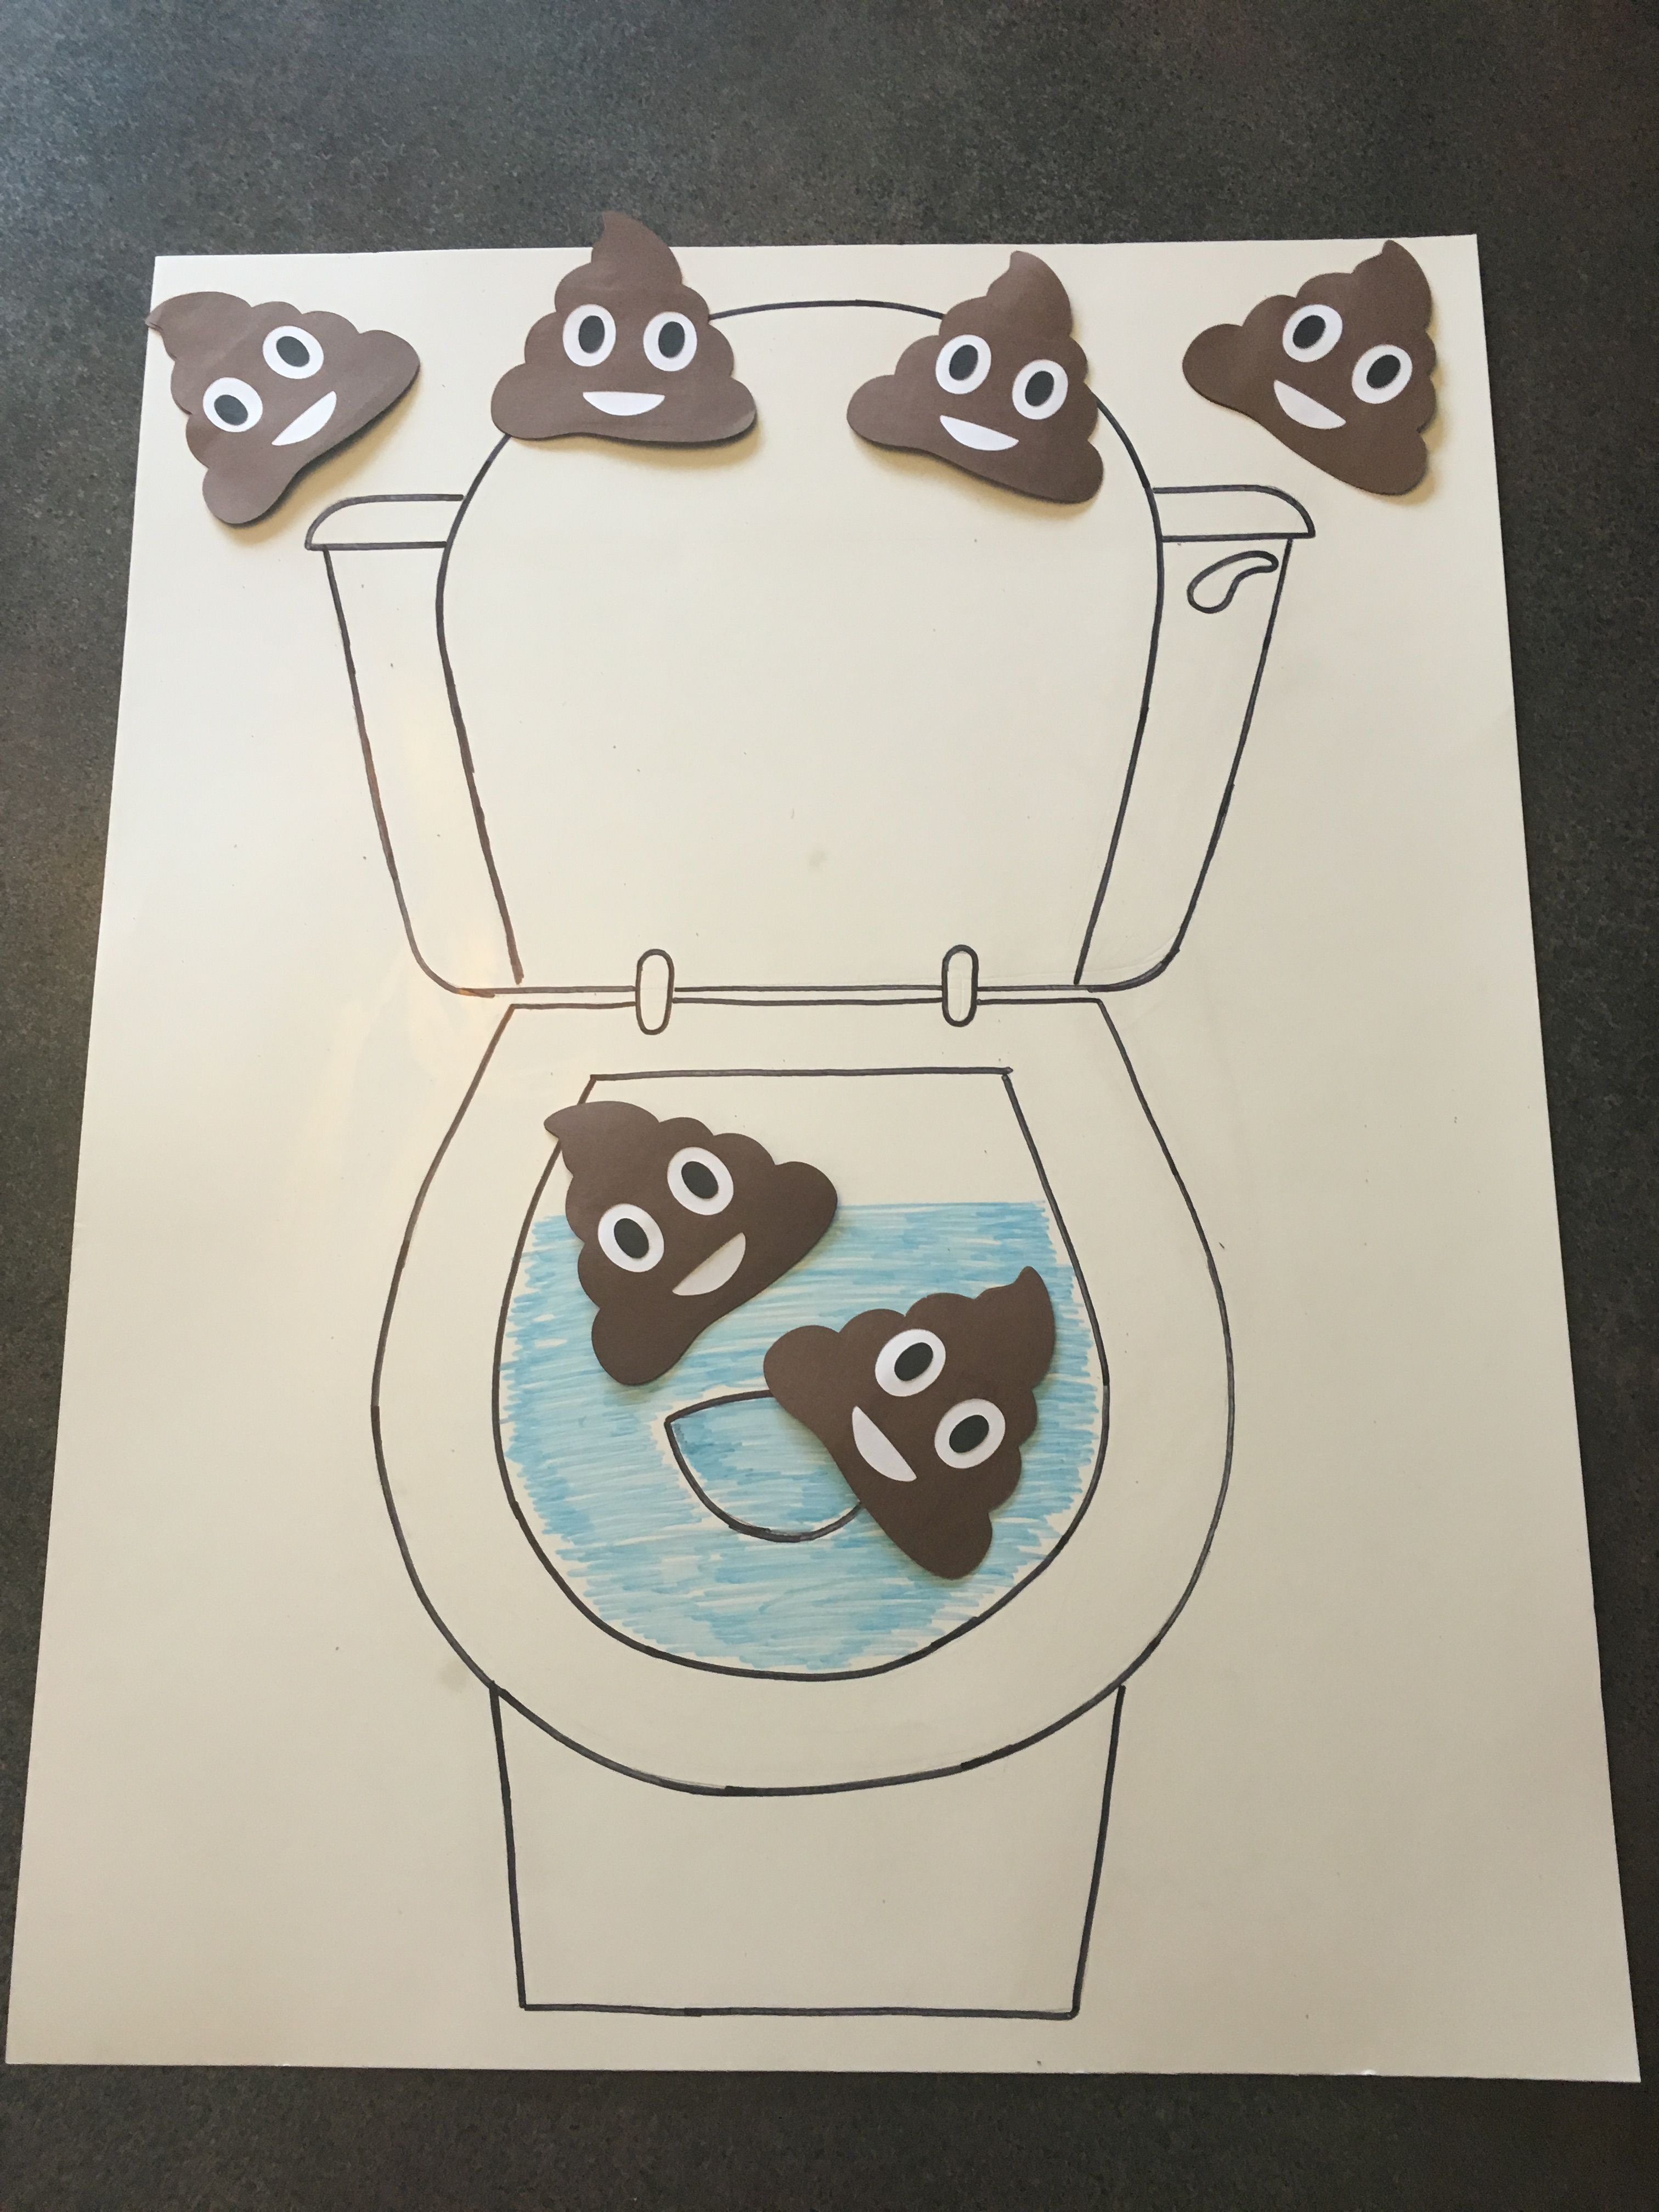 Emoji Games Pin The Use 2 Poster Boards To Draw Toilet